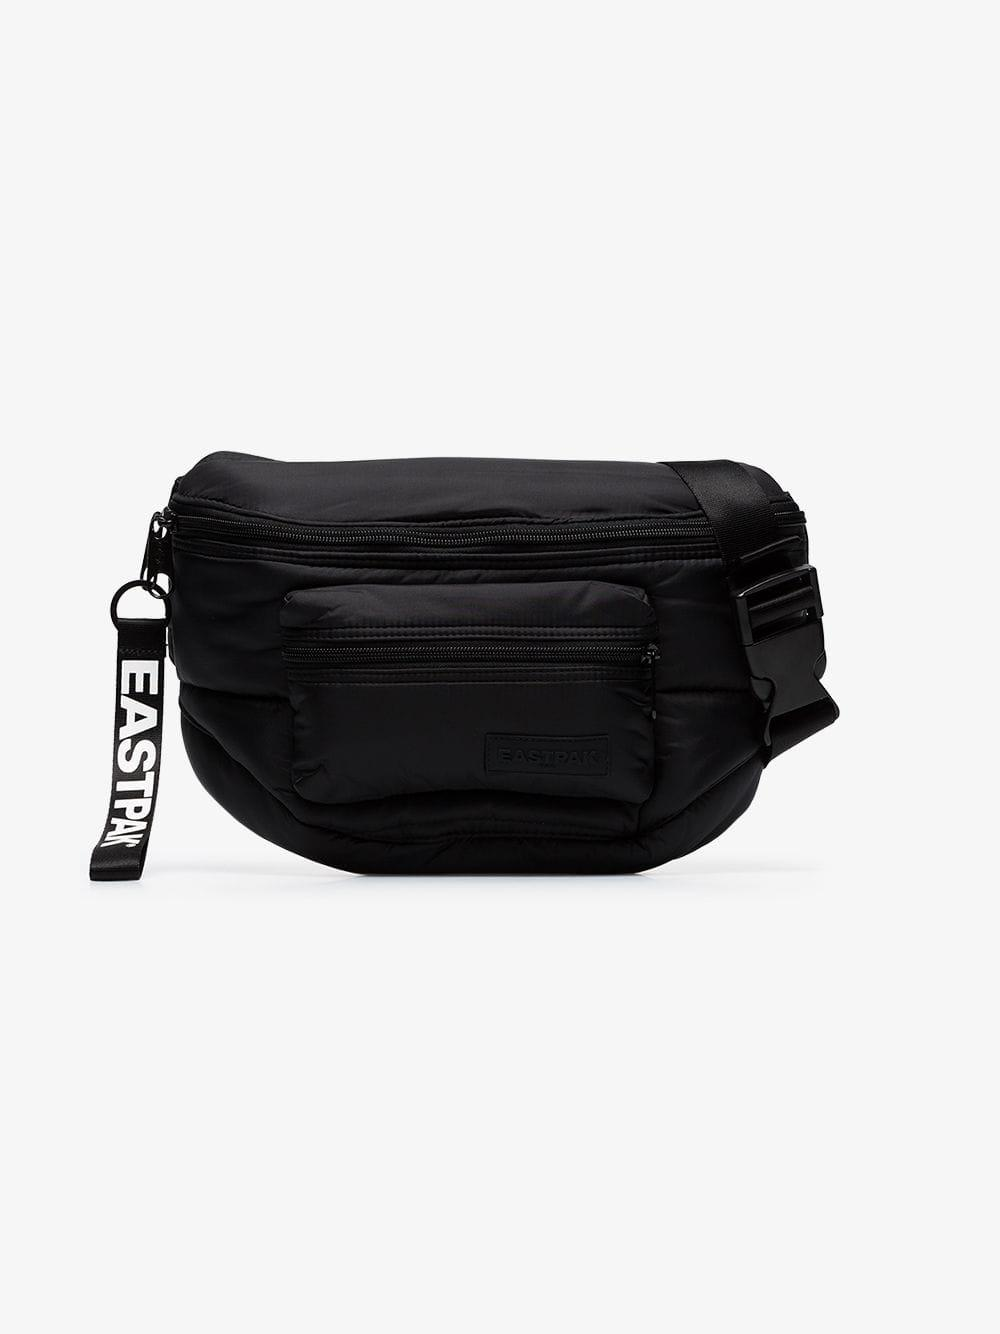 1ff4b3651d Eastpak - Black Doggy Cross Body Bag for Men - Lyst. View fullscreen